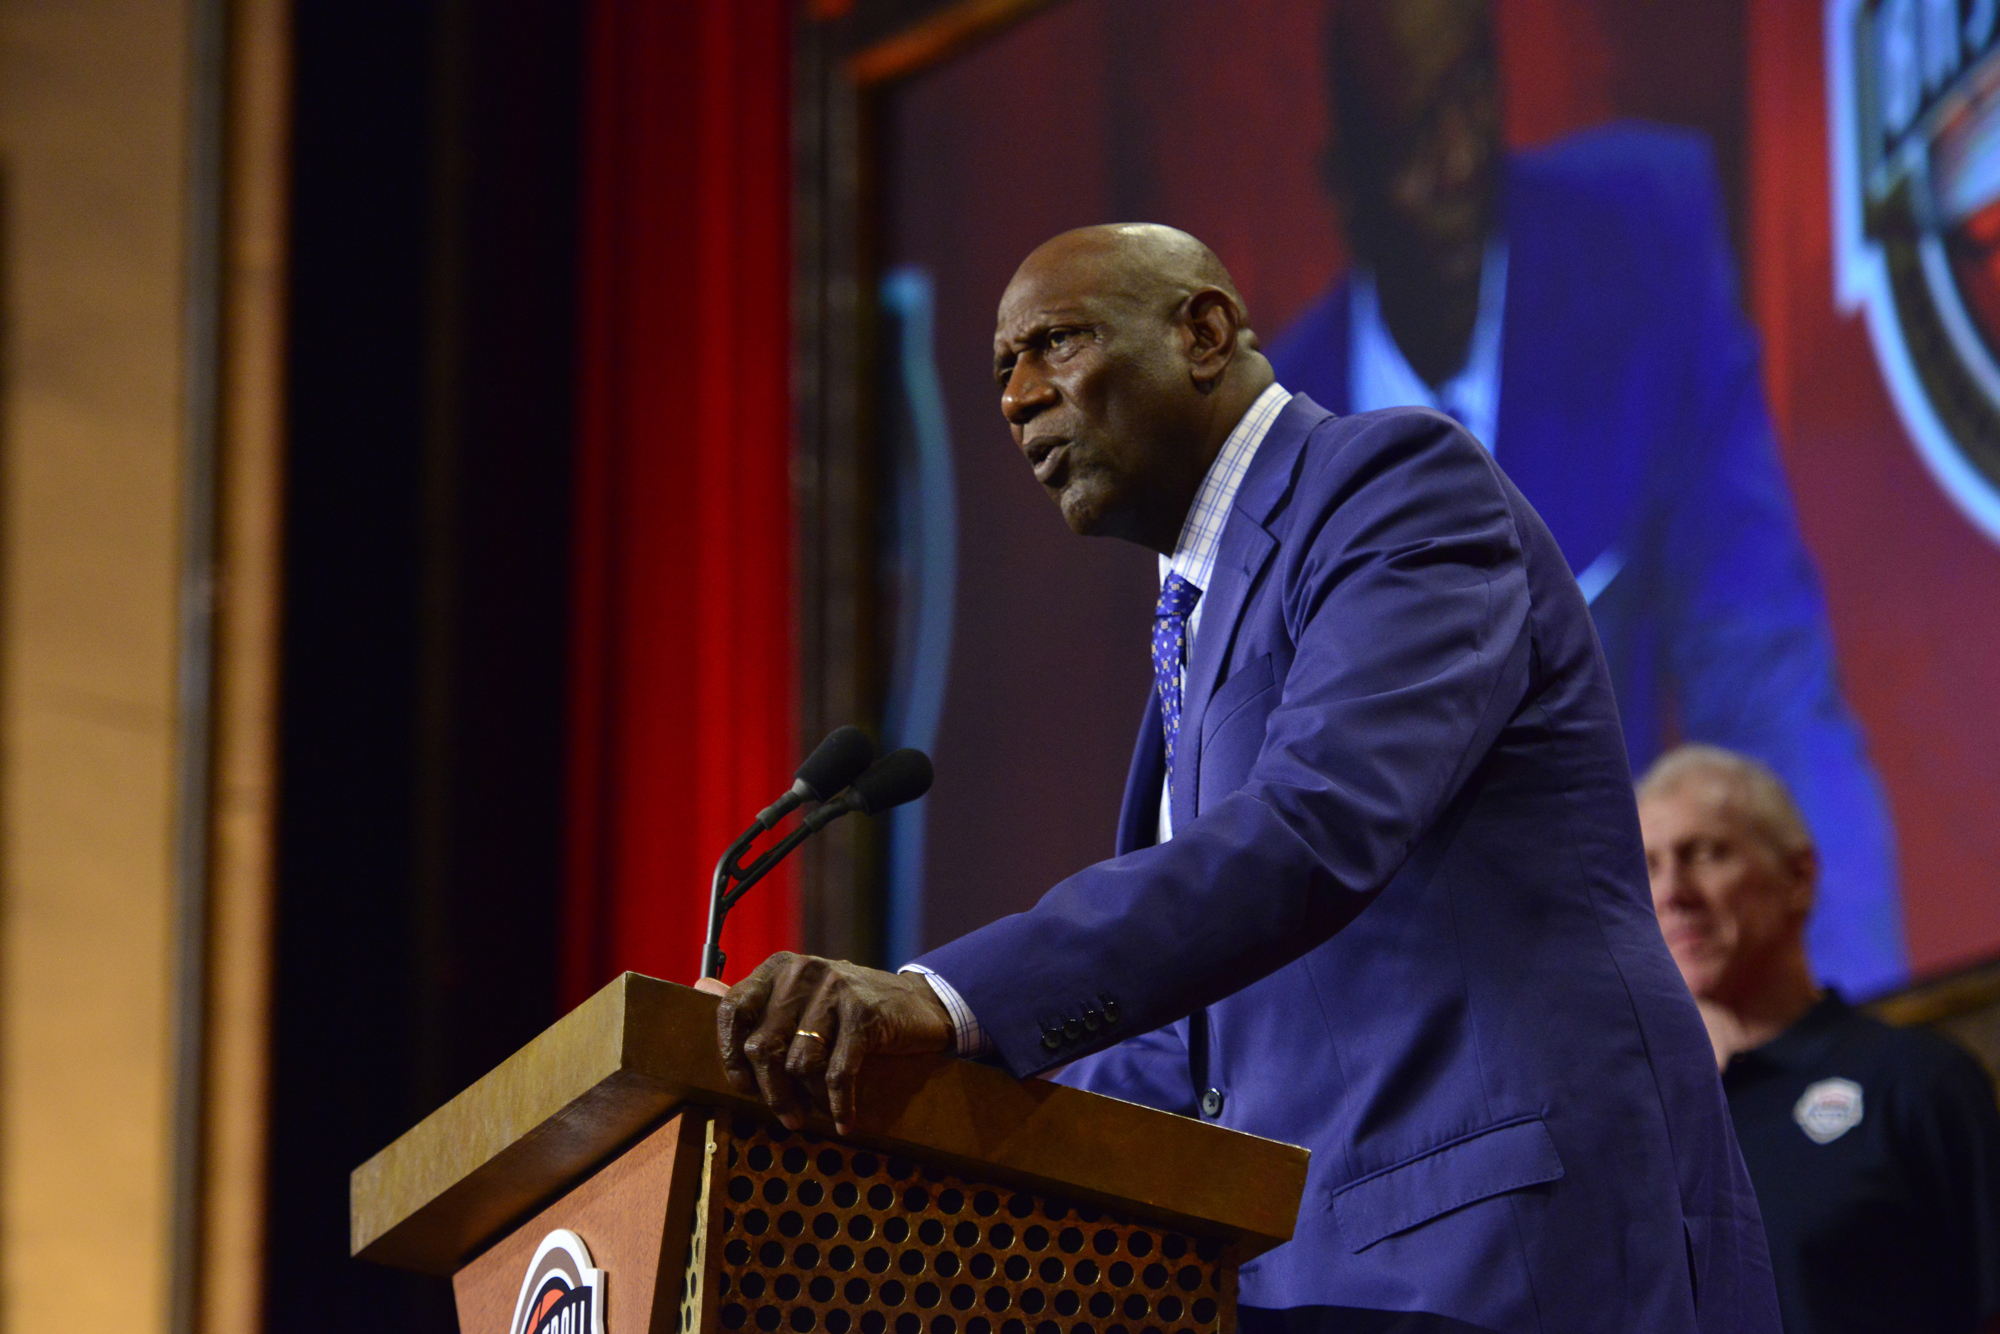 Inductee Spencer Haywood speaks during the 2015 Basketball Hall of Fame Enshrinement Ceremony on September 11, 2015 at the Naismith Basketball Hall of Fame in Springfield, Massachusetts.